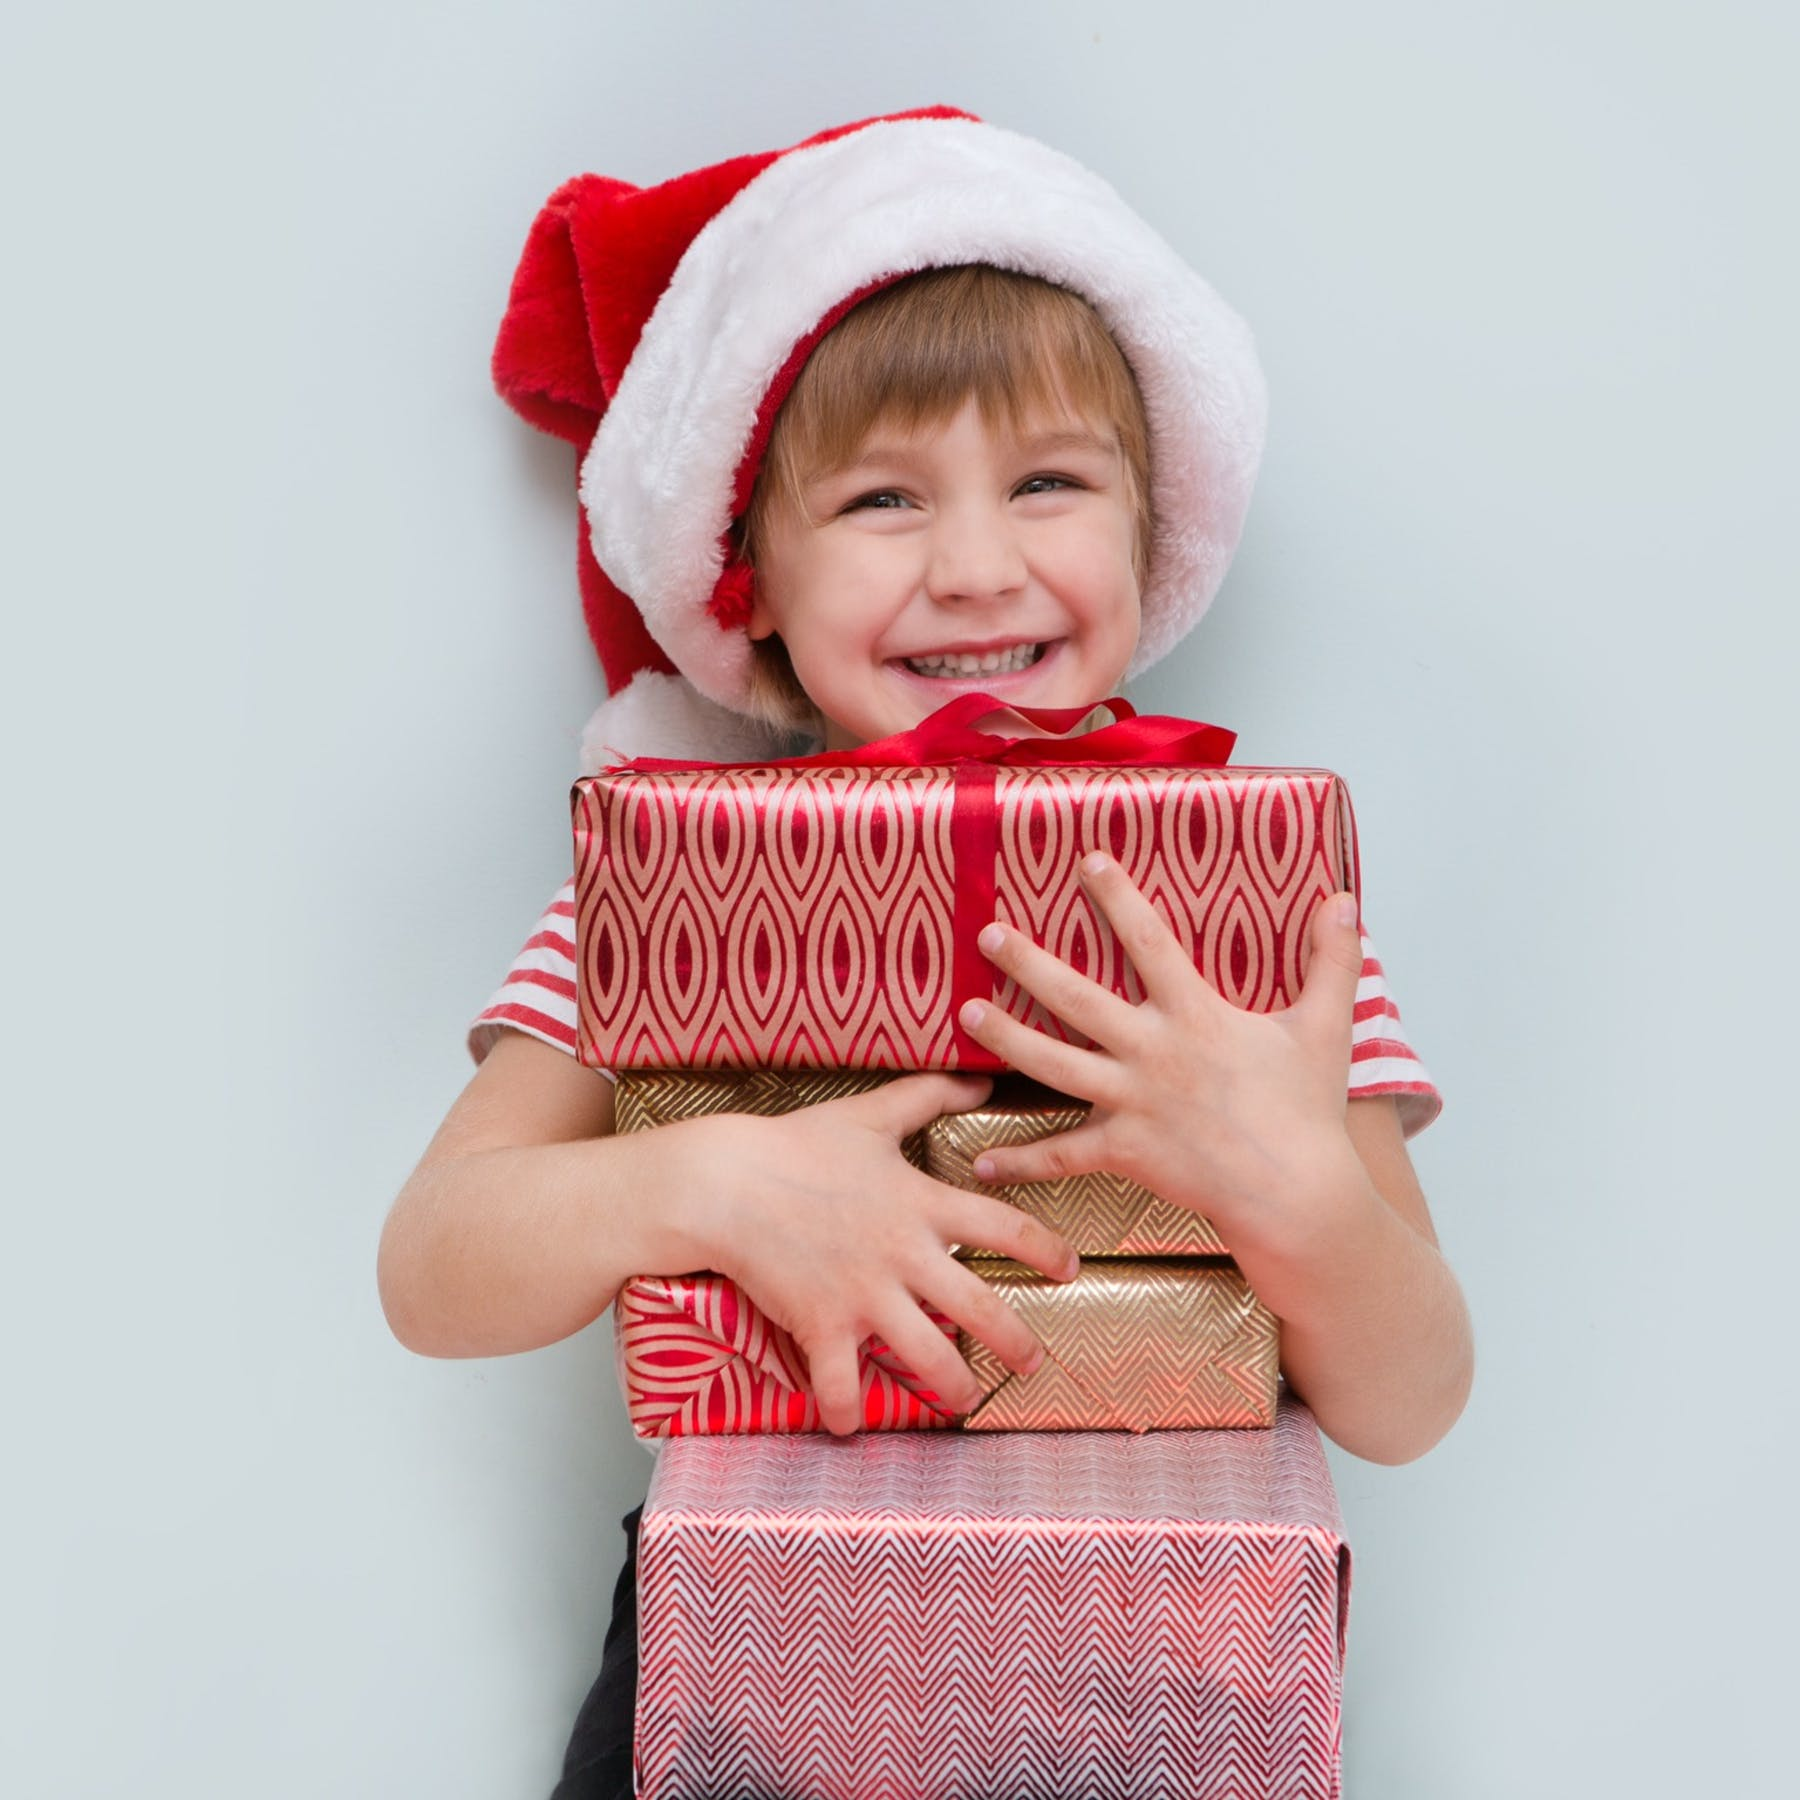 How much do you typically spend on kids at Christmas? - Winnie